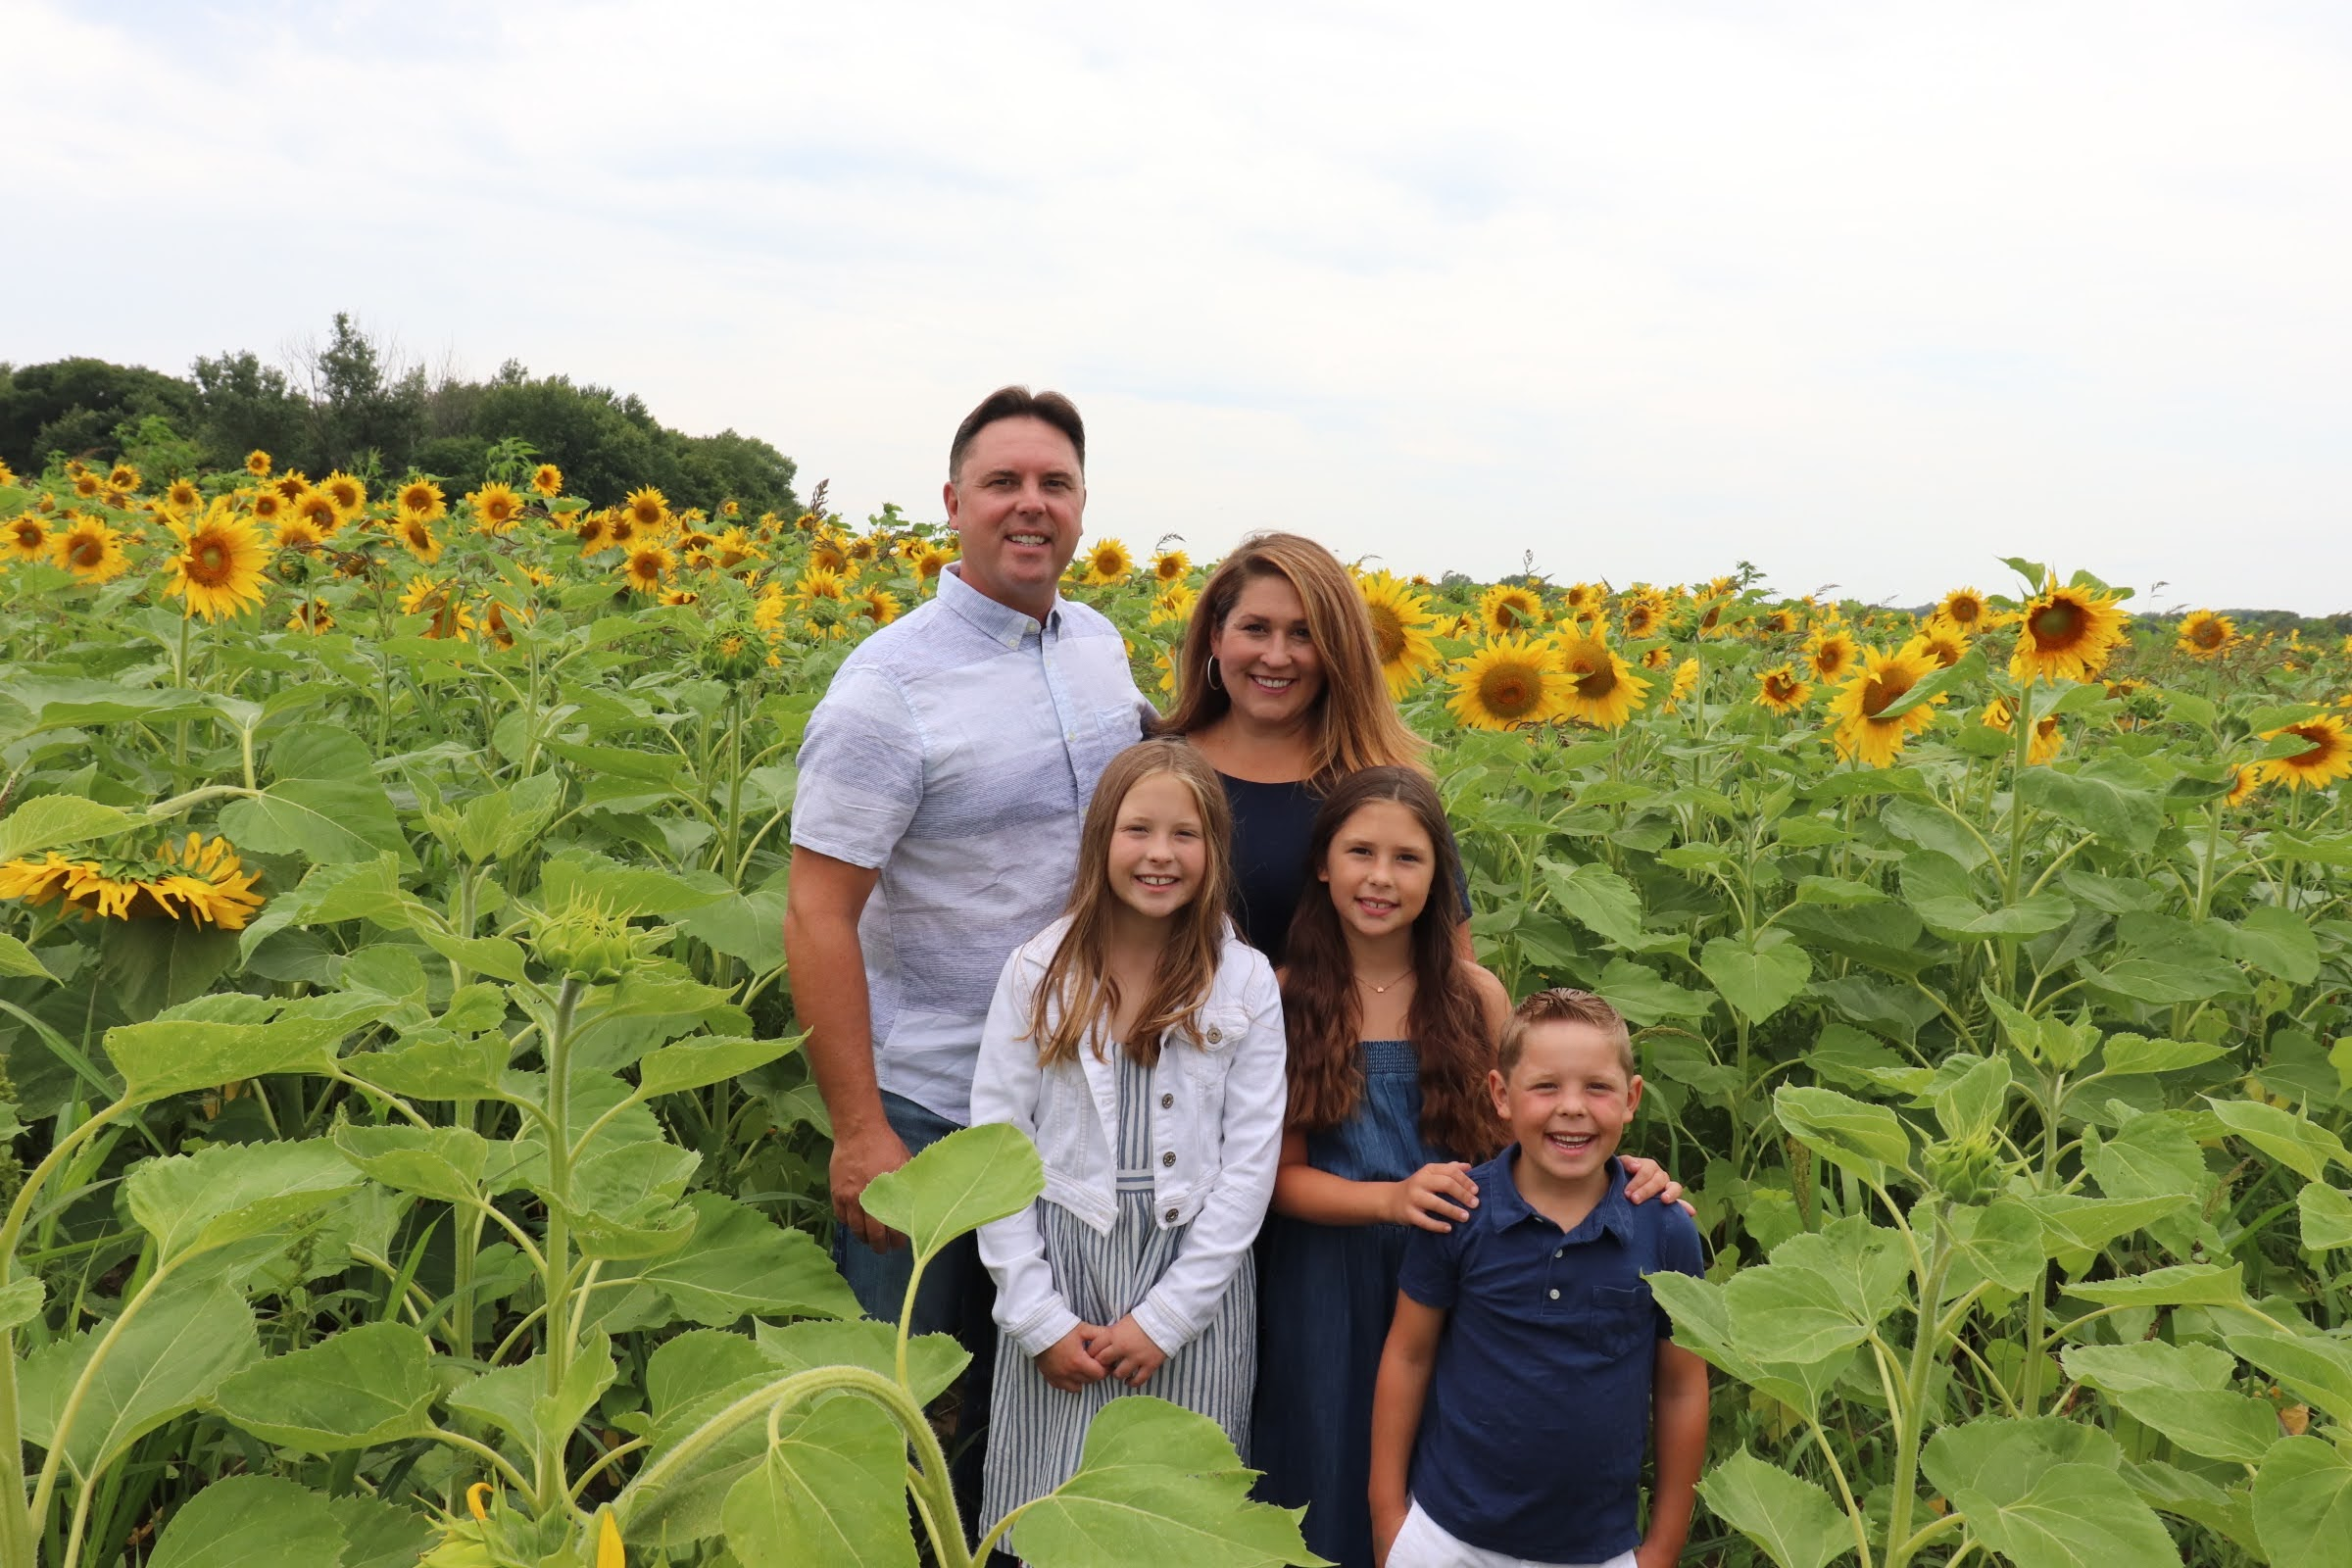 Photo of John Strohfus and family in sunflower field